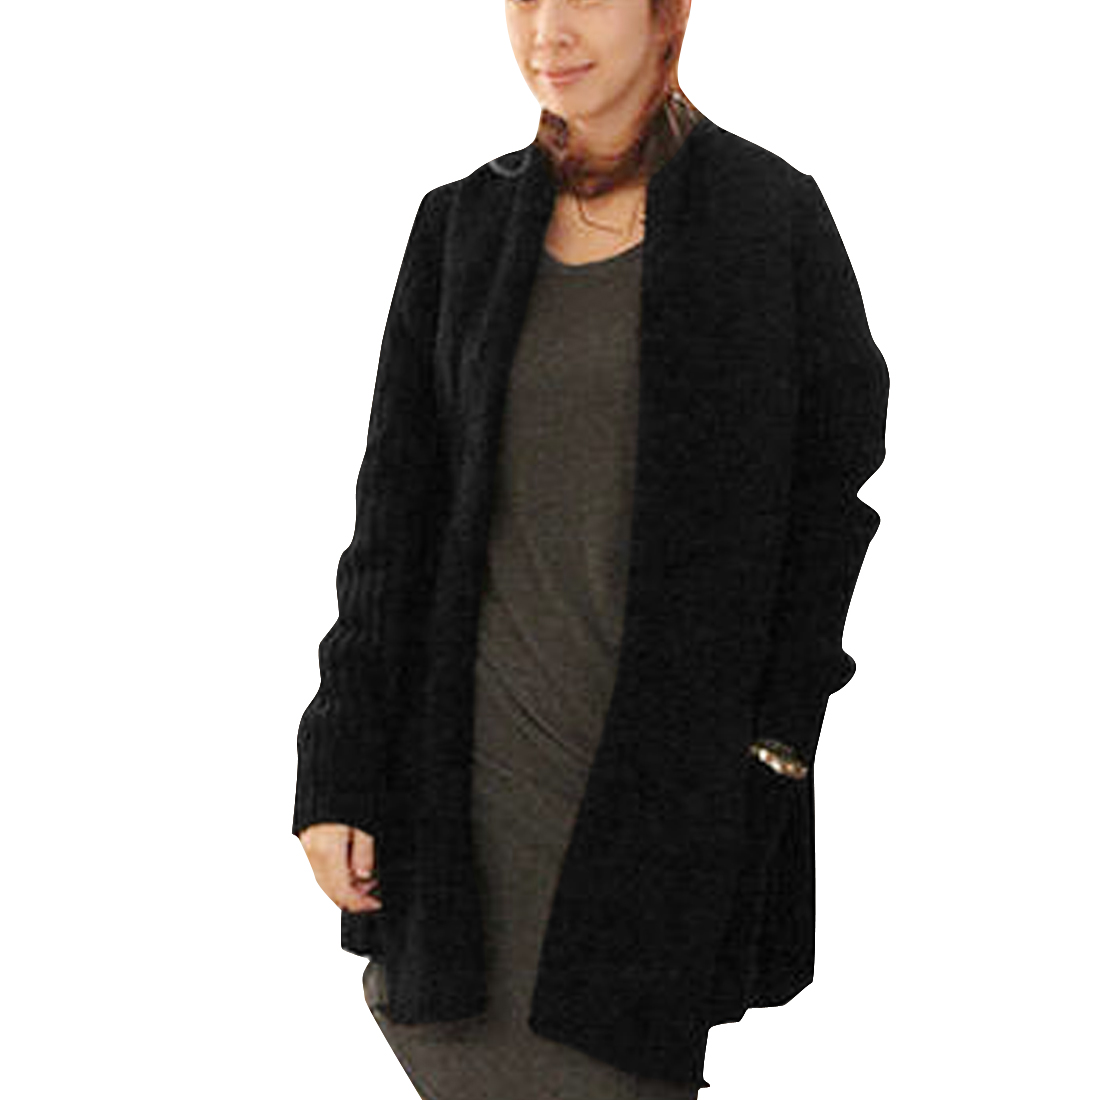 Women's Long Sleeves Panel Front Opening Warm Black M Sweater Cardigan